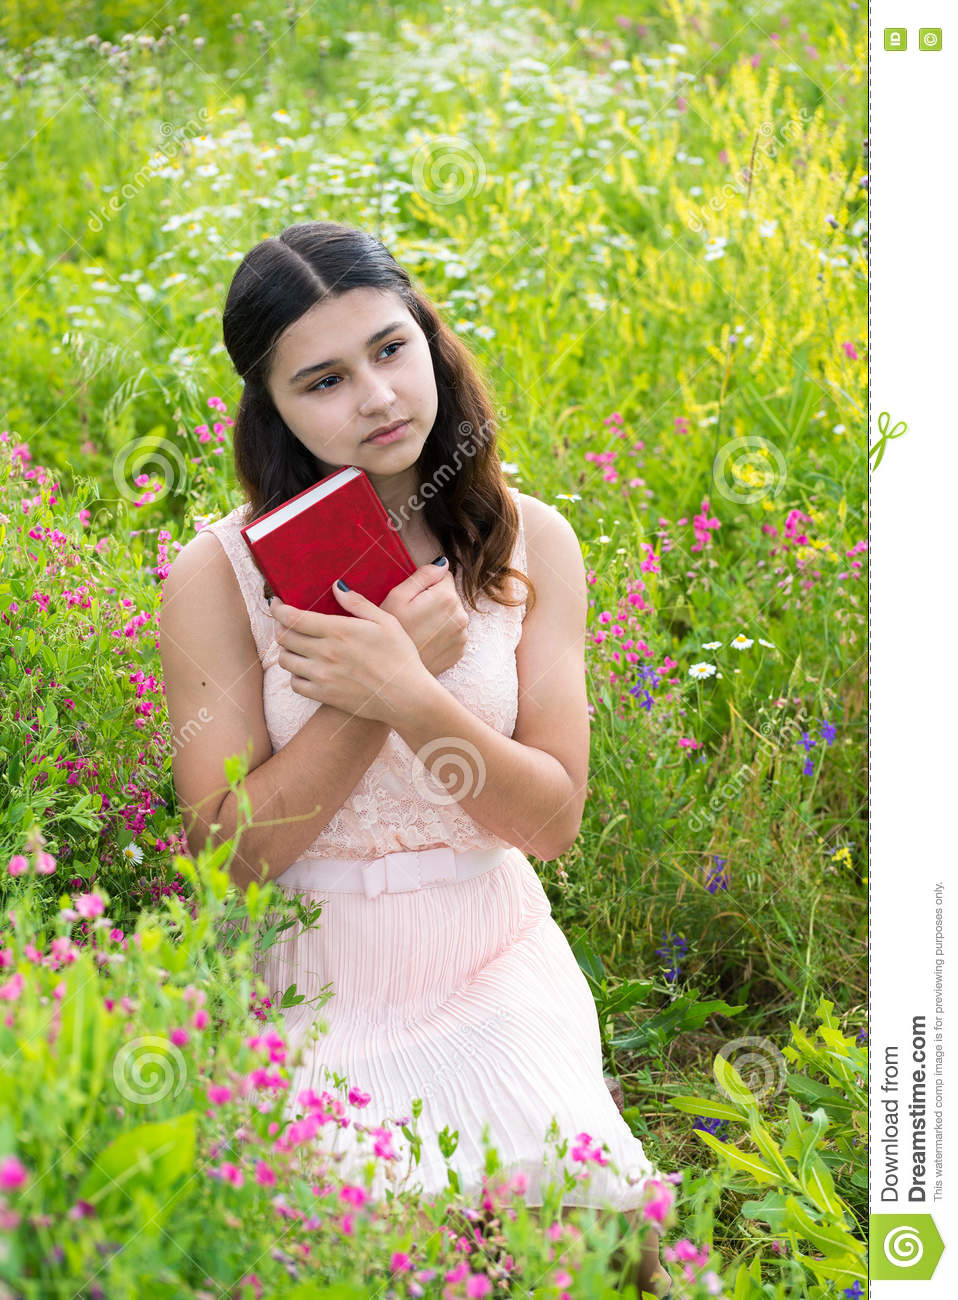 sød billig bedste grossist Forenede Stater Romantic Girl With Red Book On Nature Stock Photo - Image of ...